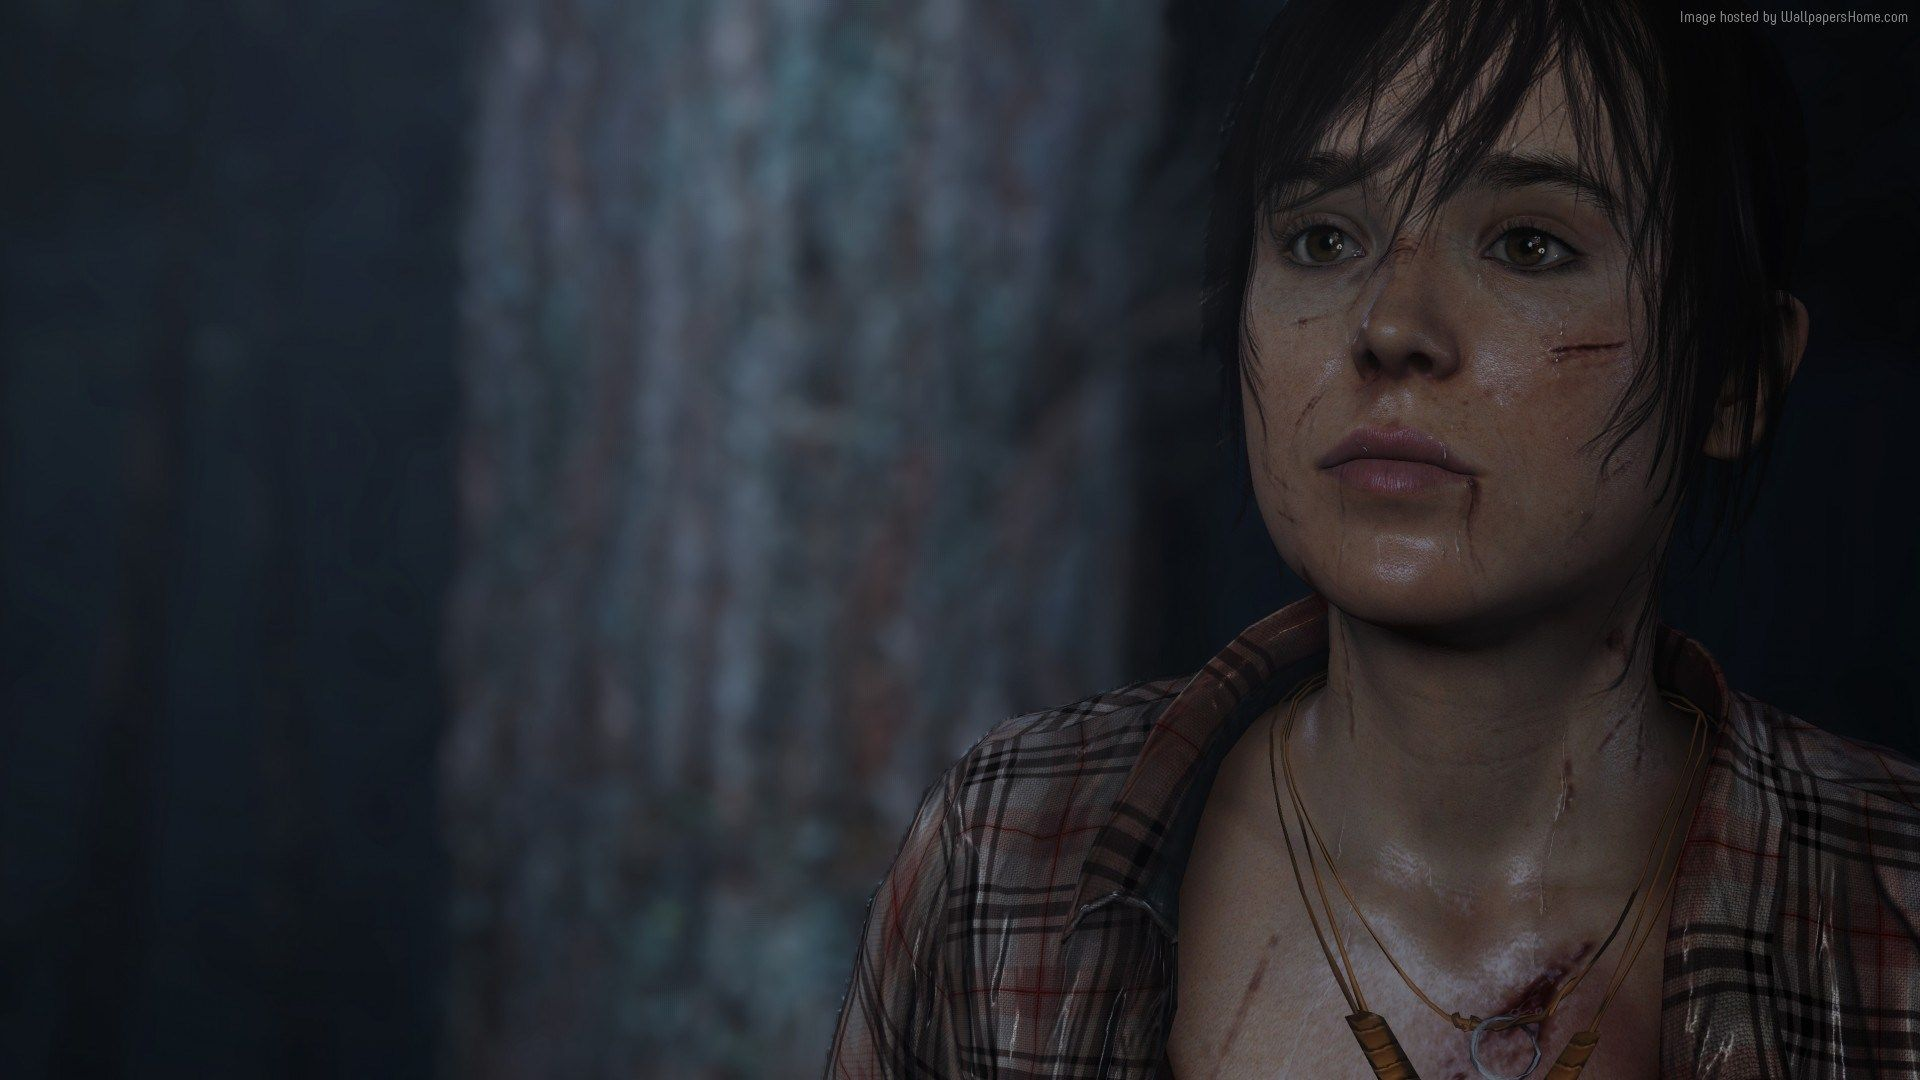 sony comes out swinging against beyond: two souls nudes | game art